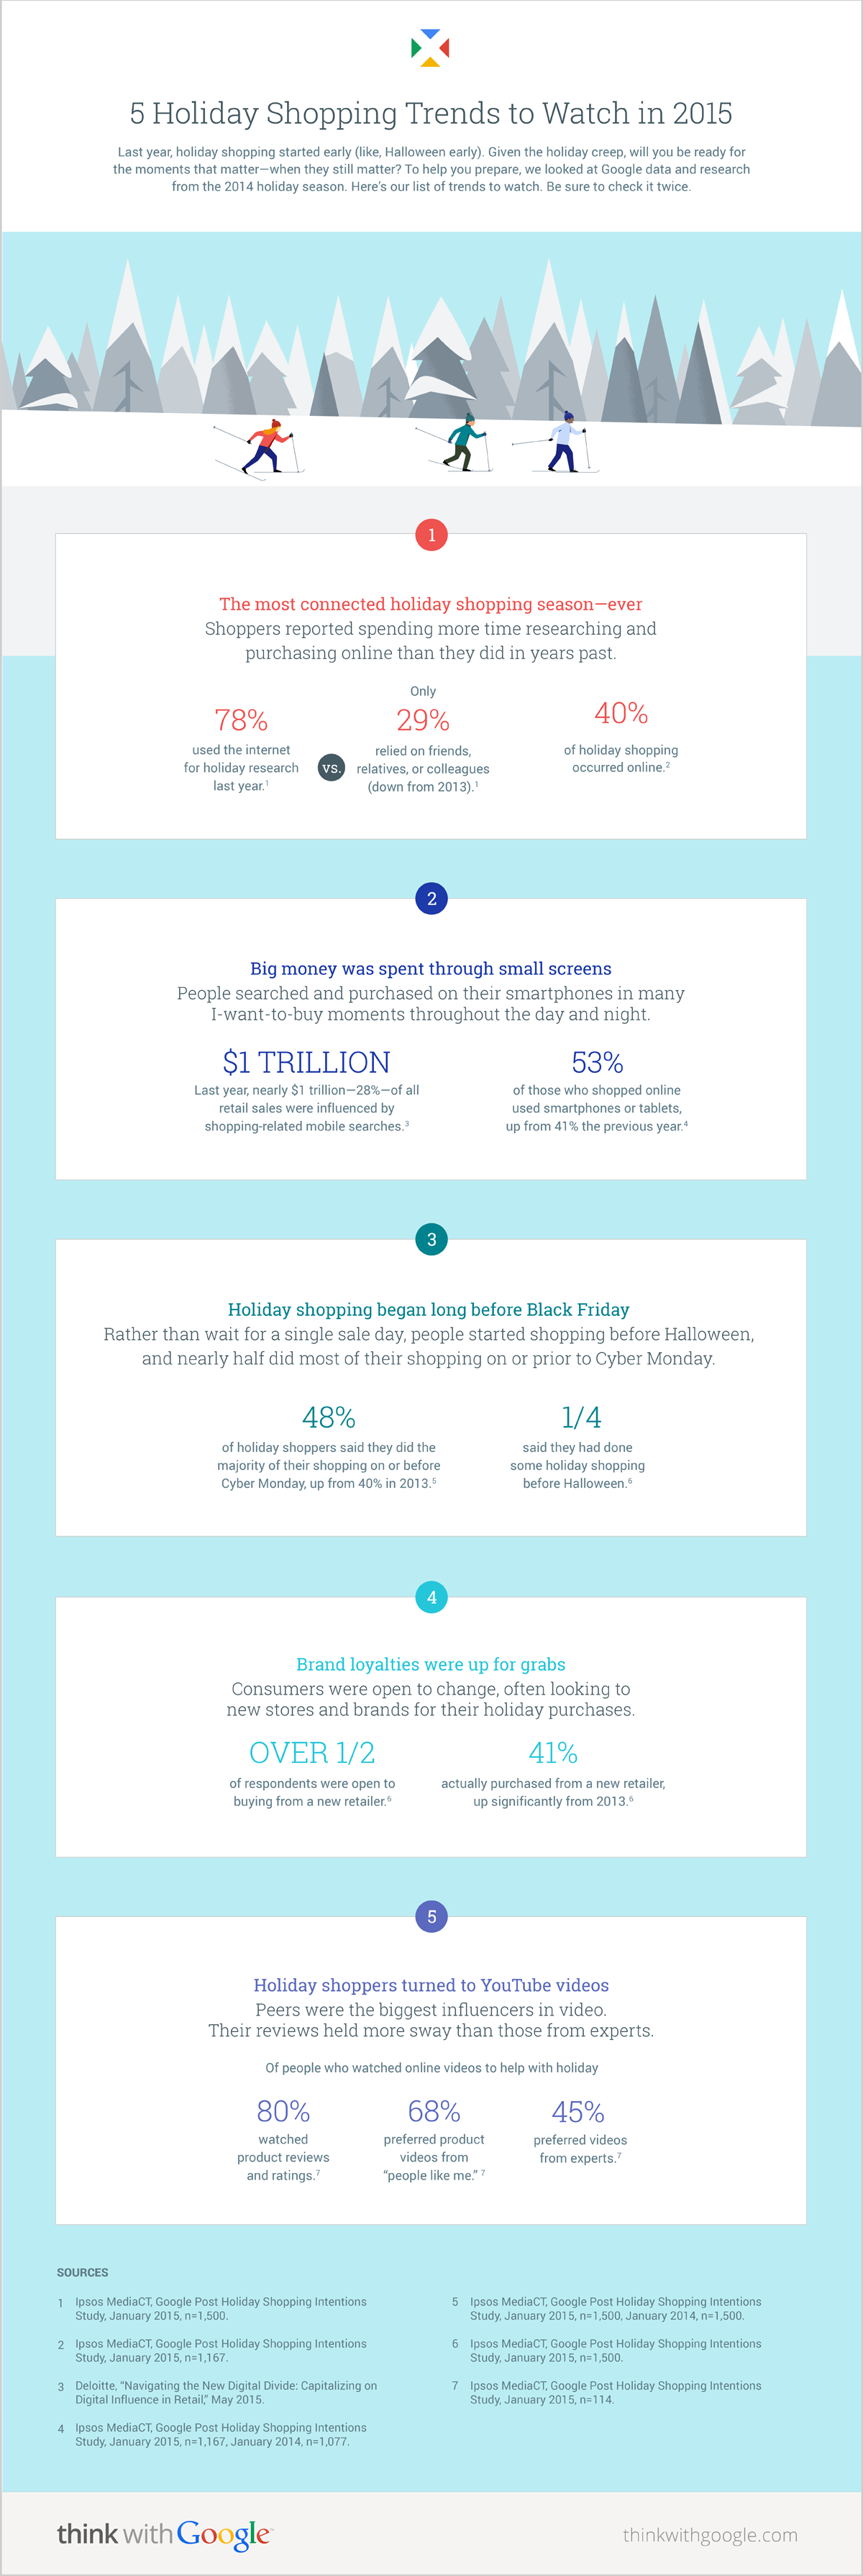 Holiday Shopping Trends Show Loyalty Is Up For Grabs Holiday Trends Shopping Ecommerce Infographic